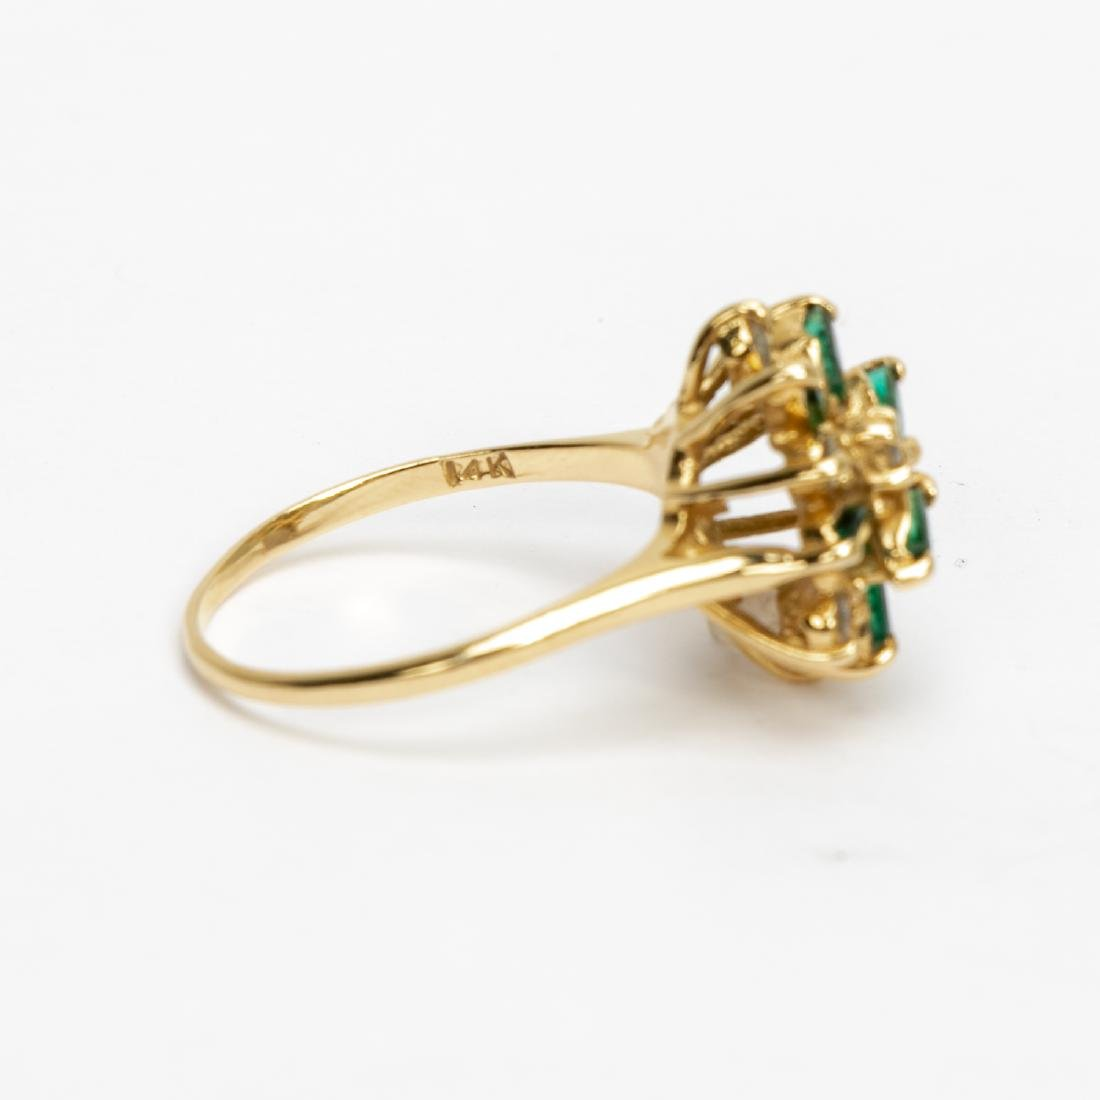 14k Gold, Emerald, & Diamond Cluster Ring - 2